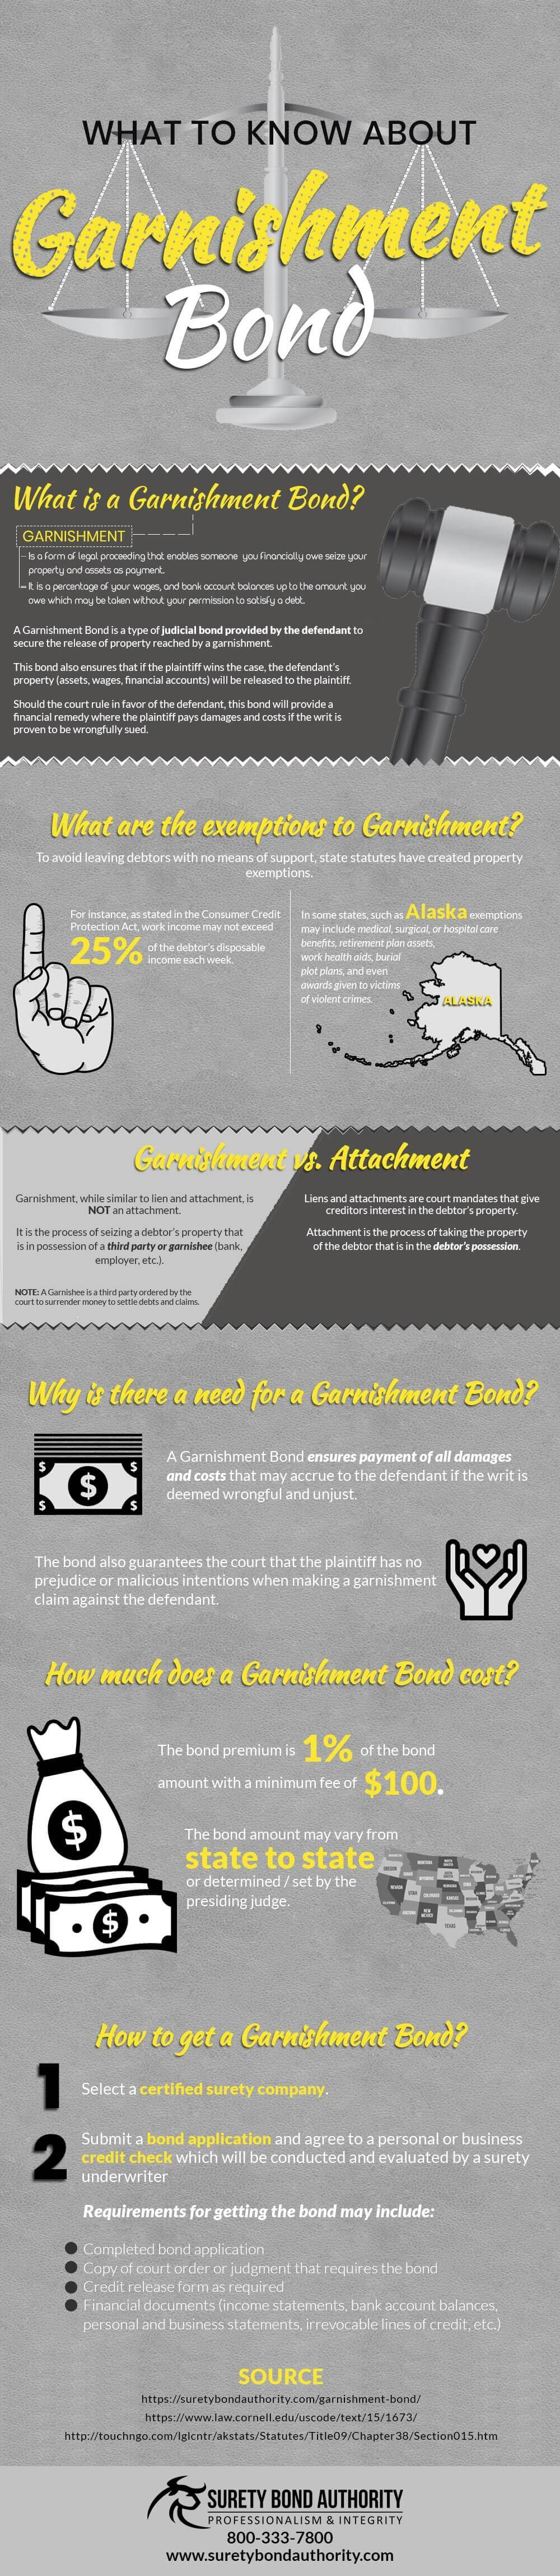 Garnishment Bond Infographic